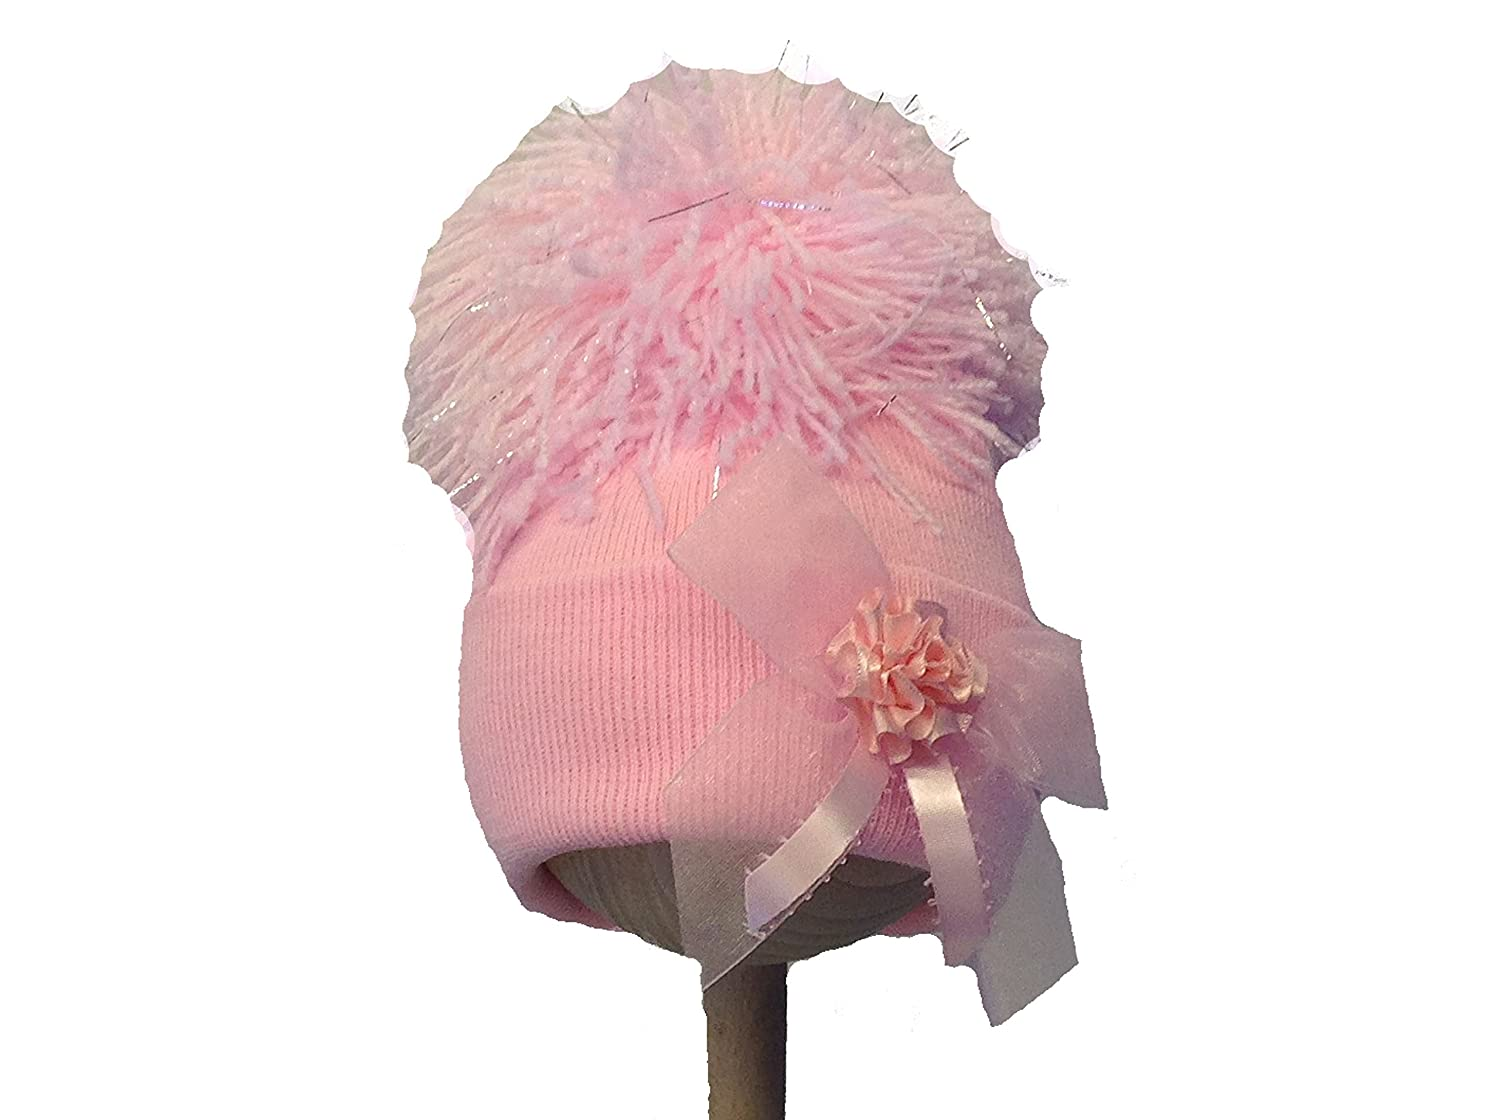 324d2c6e6b1 Baby Girls Knitted Pom Pom Hat With Ribbon and Flower Bow Design (12  Months)  Amazon.co.uk  Baby